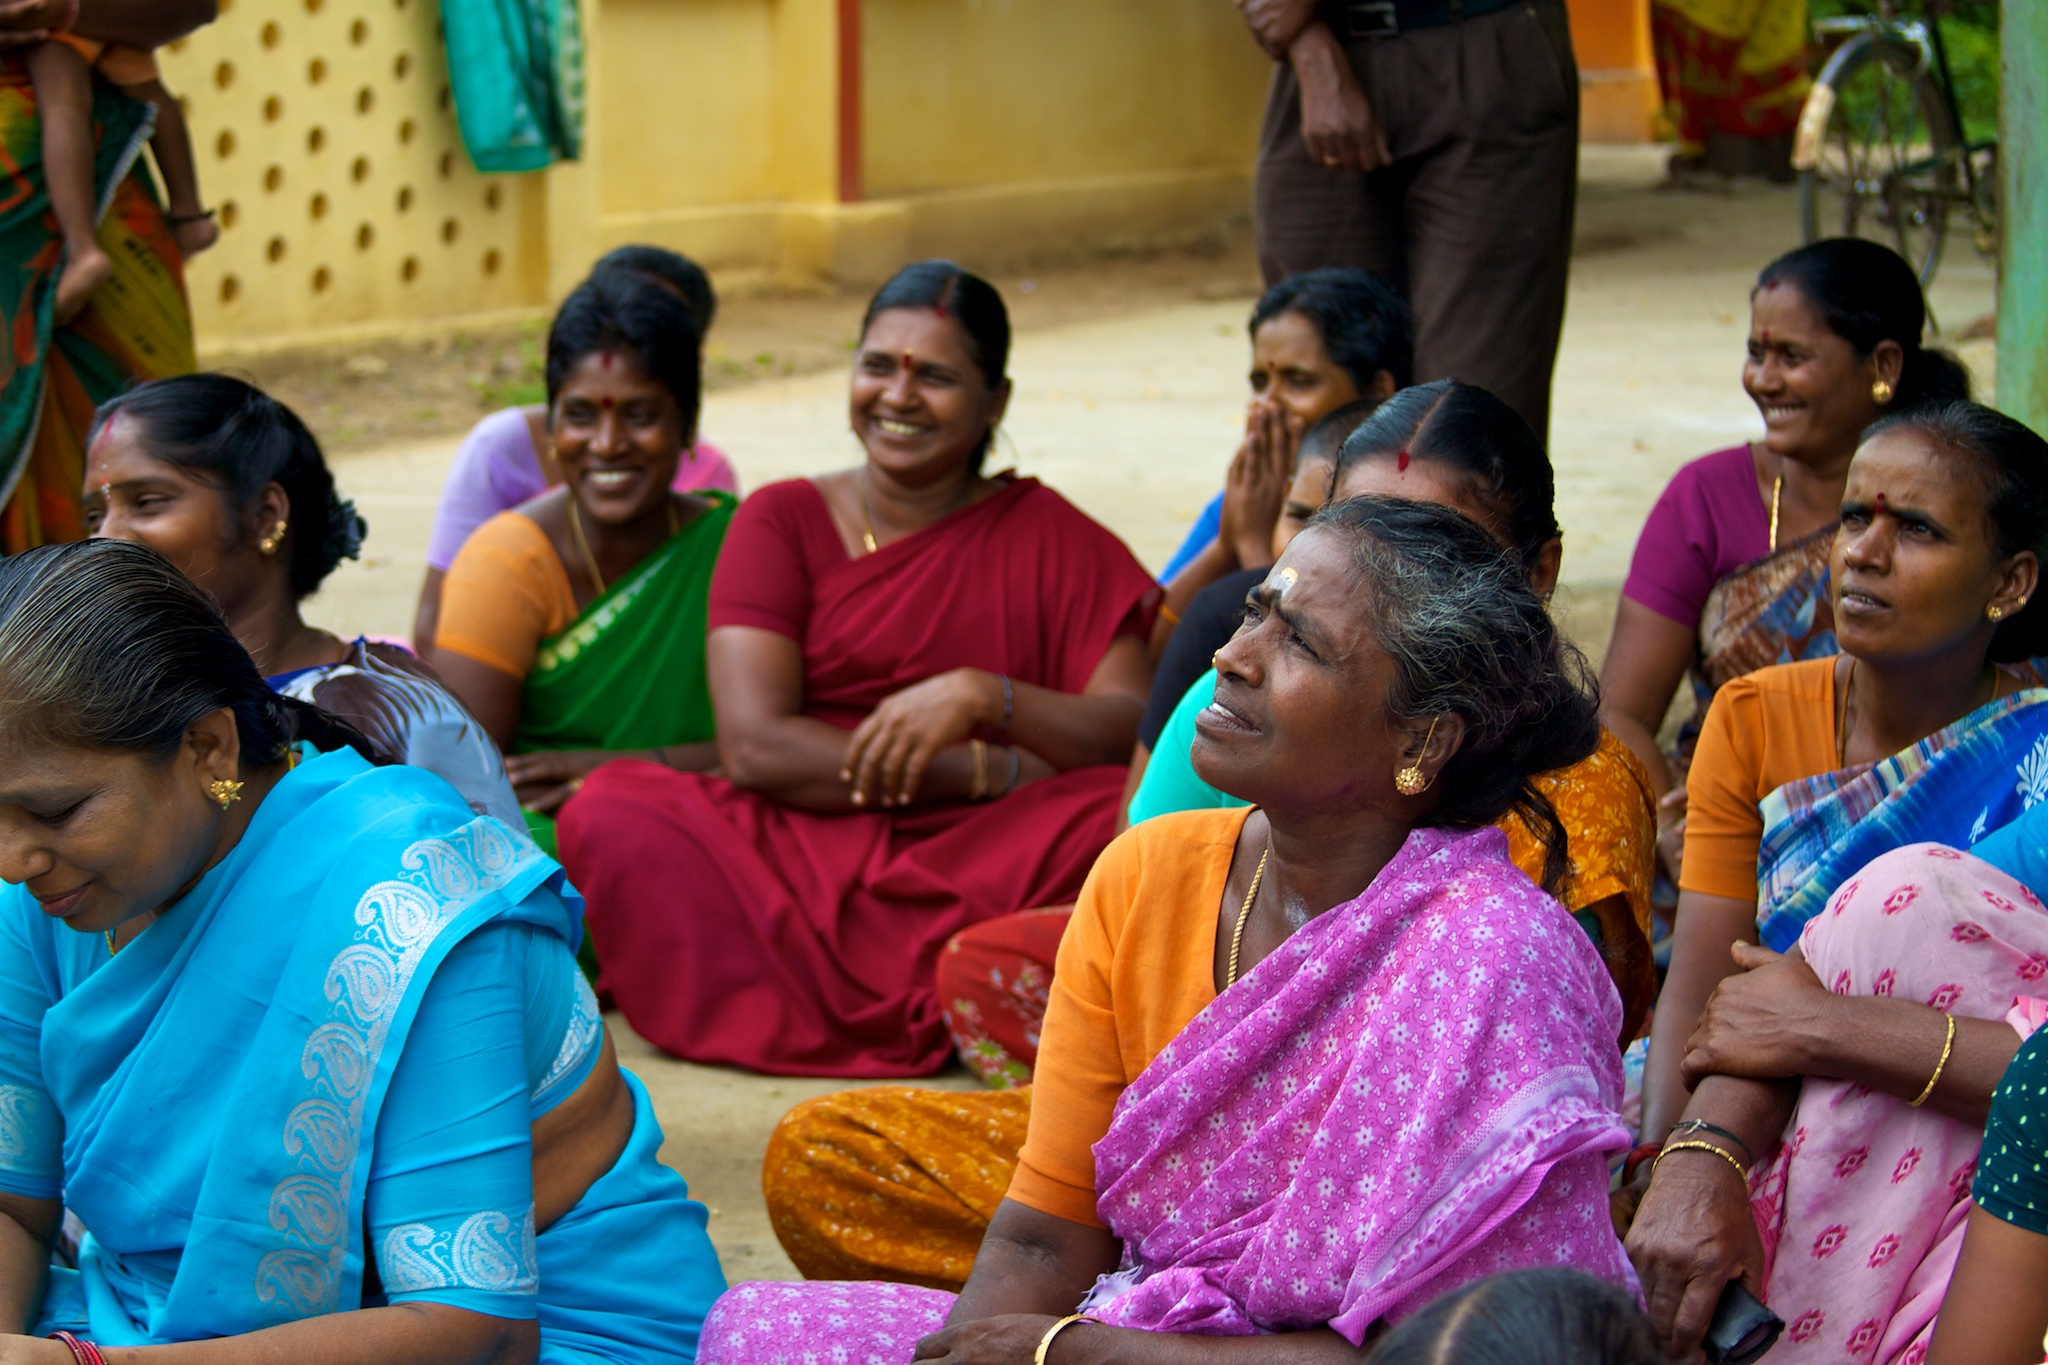 Several women in sarees, talking and laughing